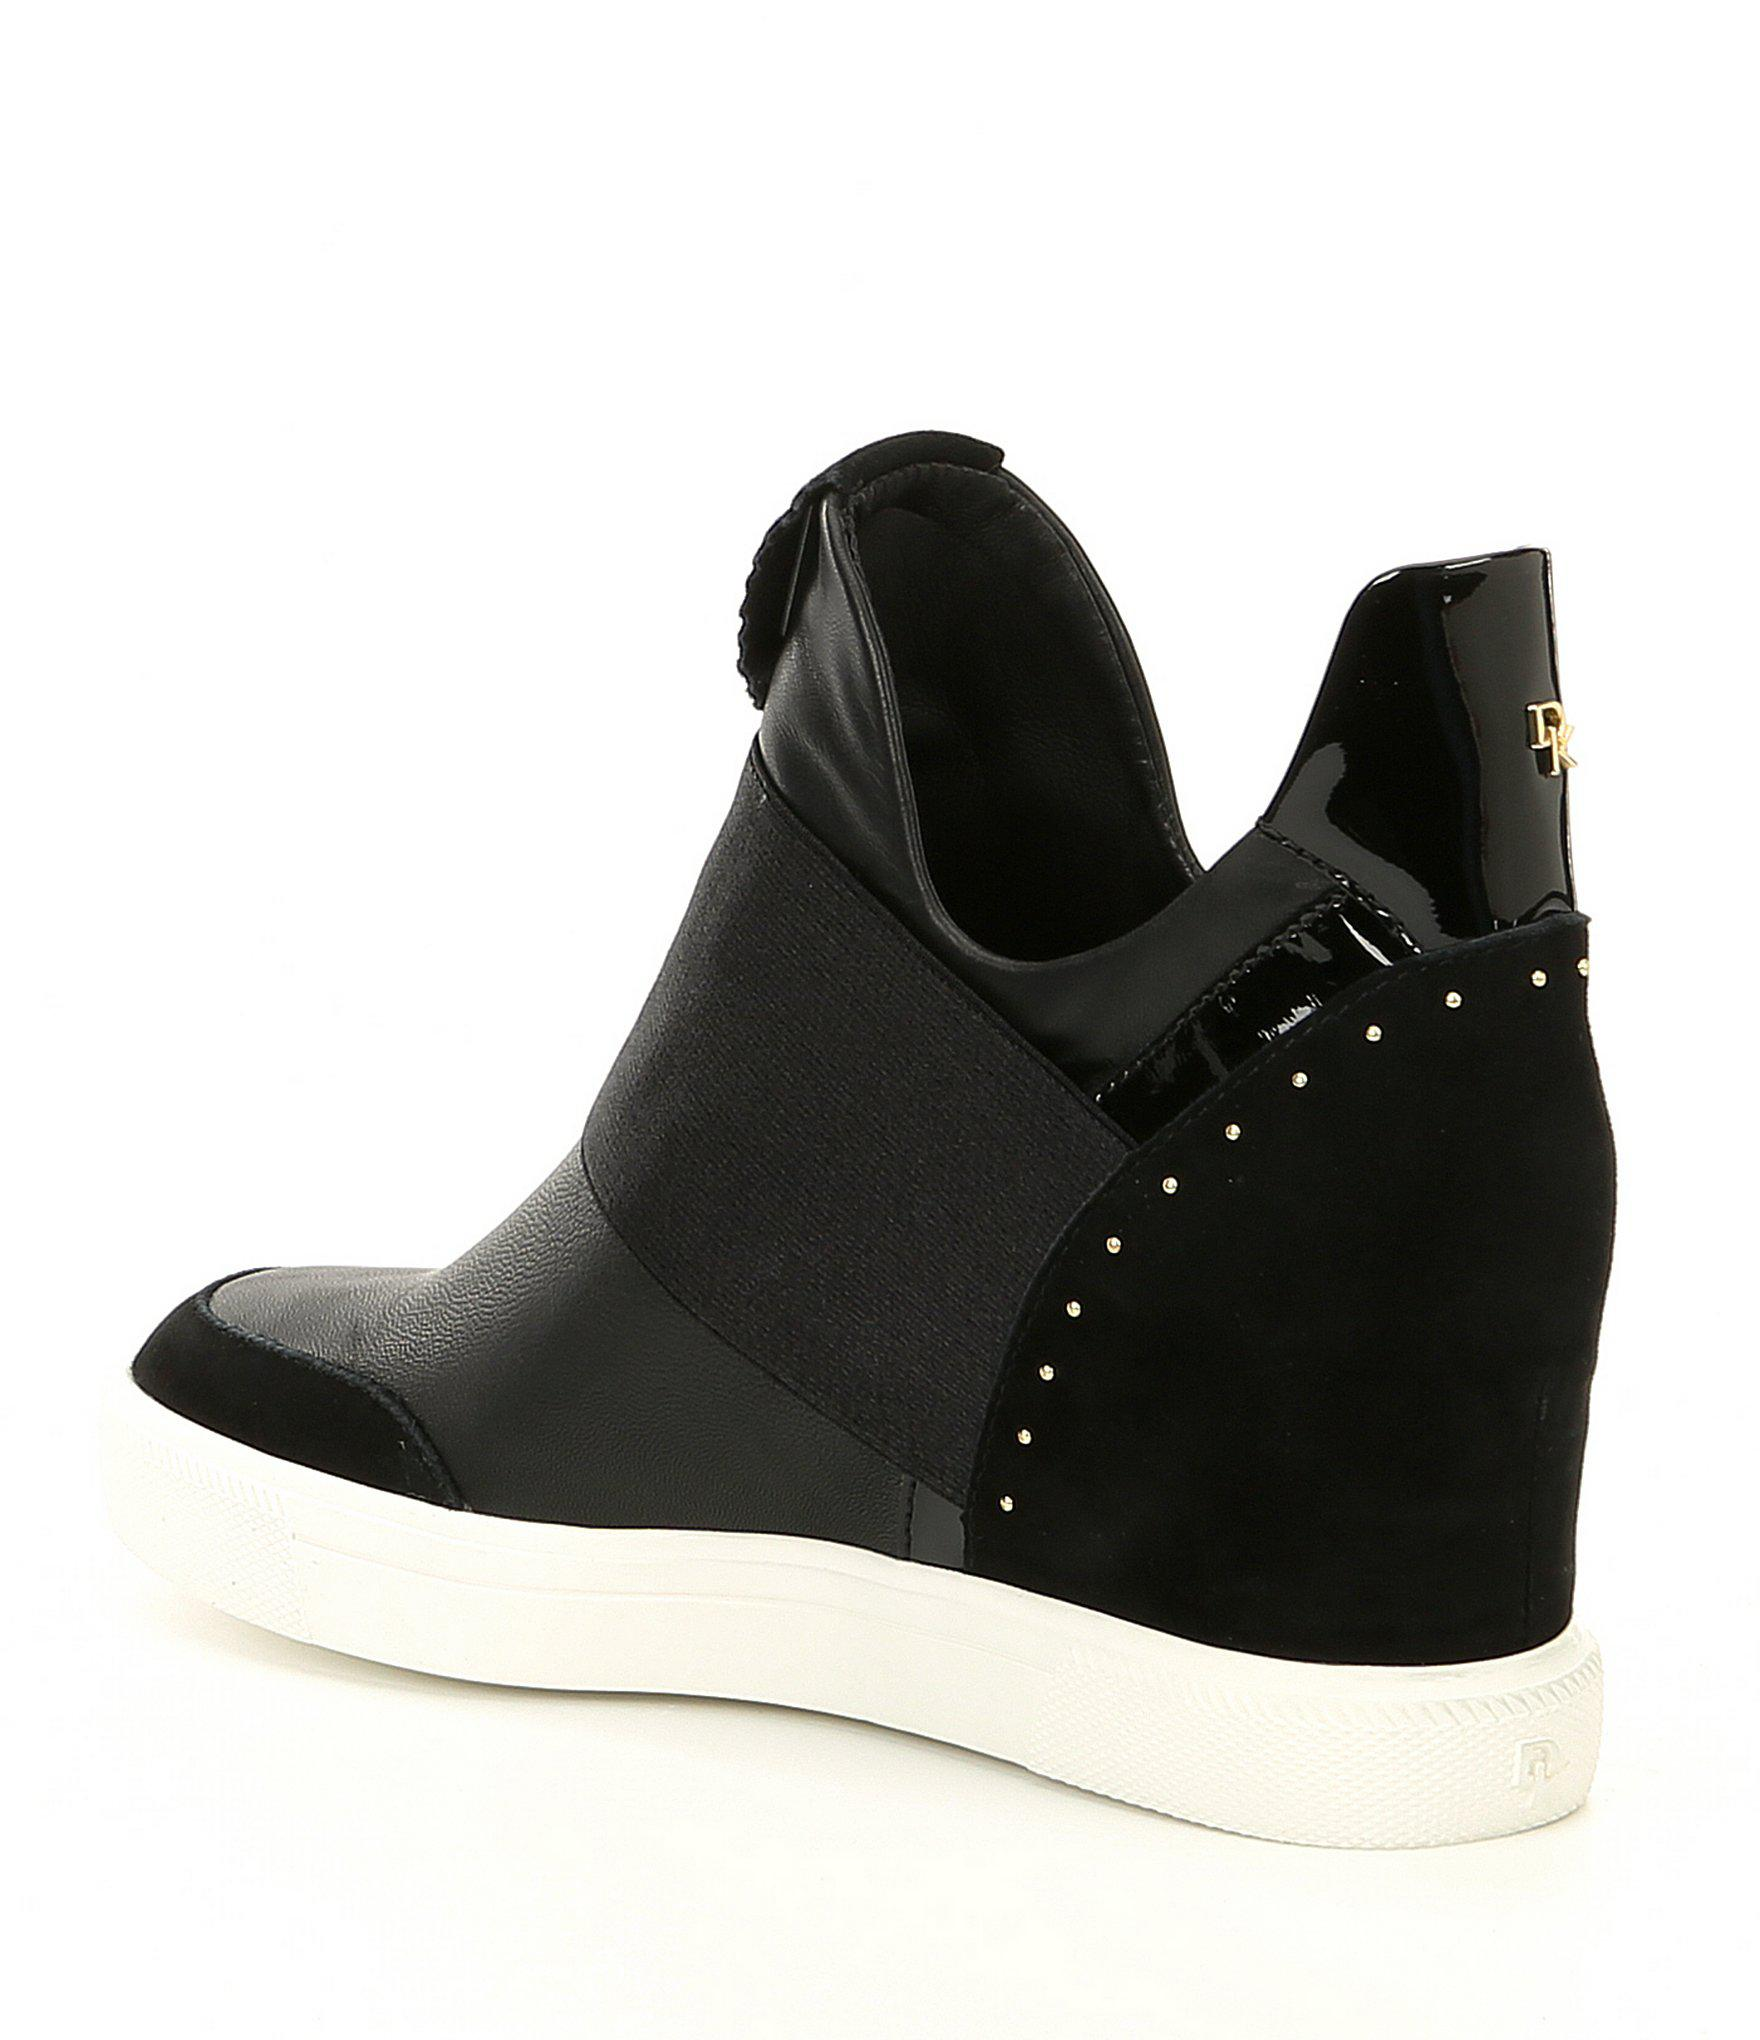 810f7dbd8f20 Donna Karan - Black Cailin Hidden Leather Wedge Sneakers - Lyst. View  fullscreen